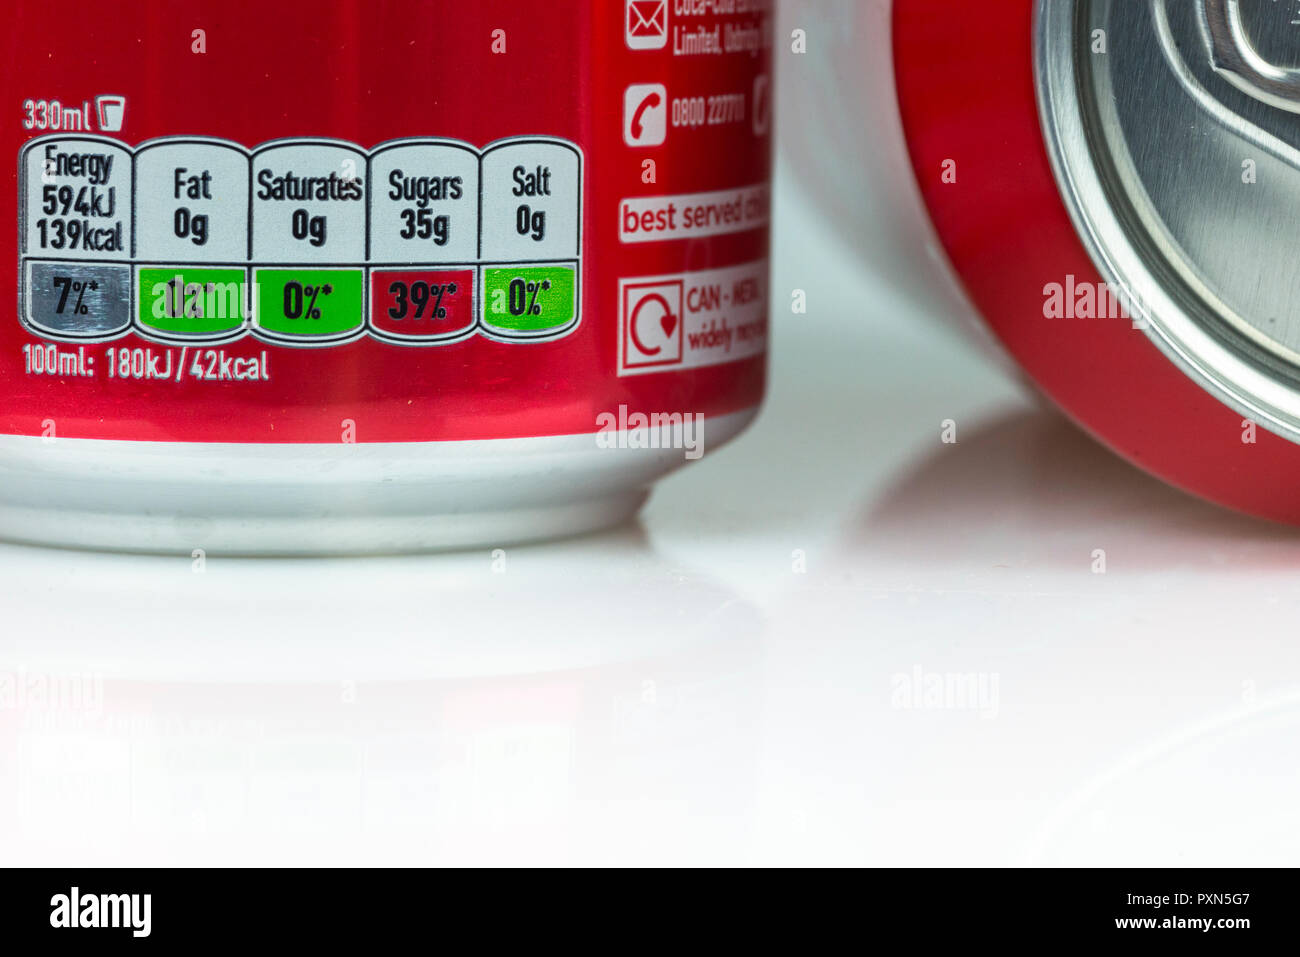 Classic Coke Food label decoder shows high sugar level and is impacted by the new Sugar tax introduced in the UK. - Stock Image